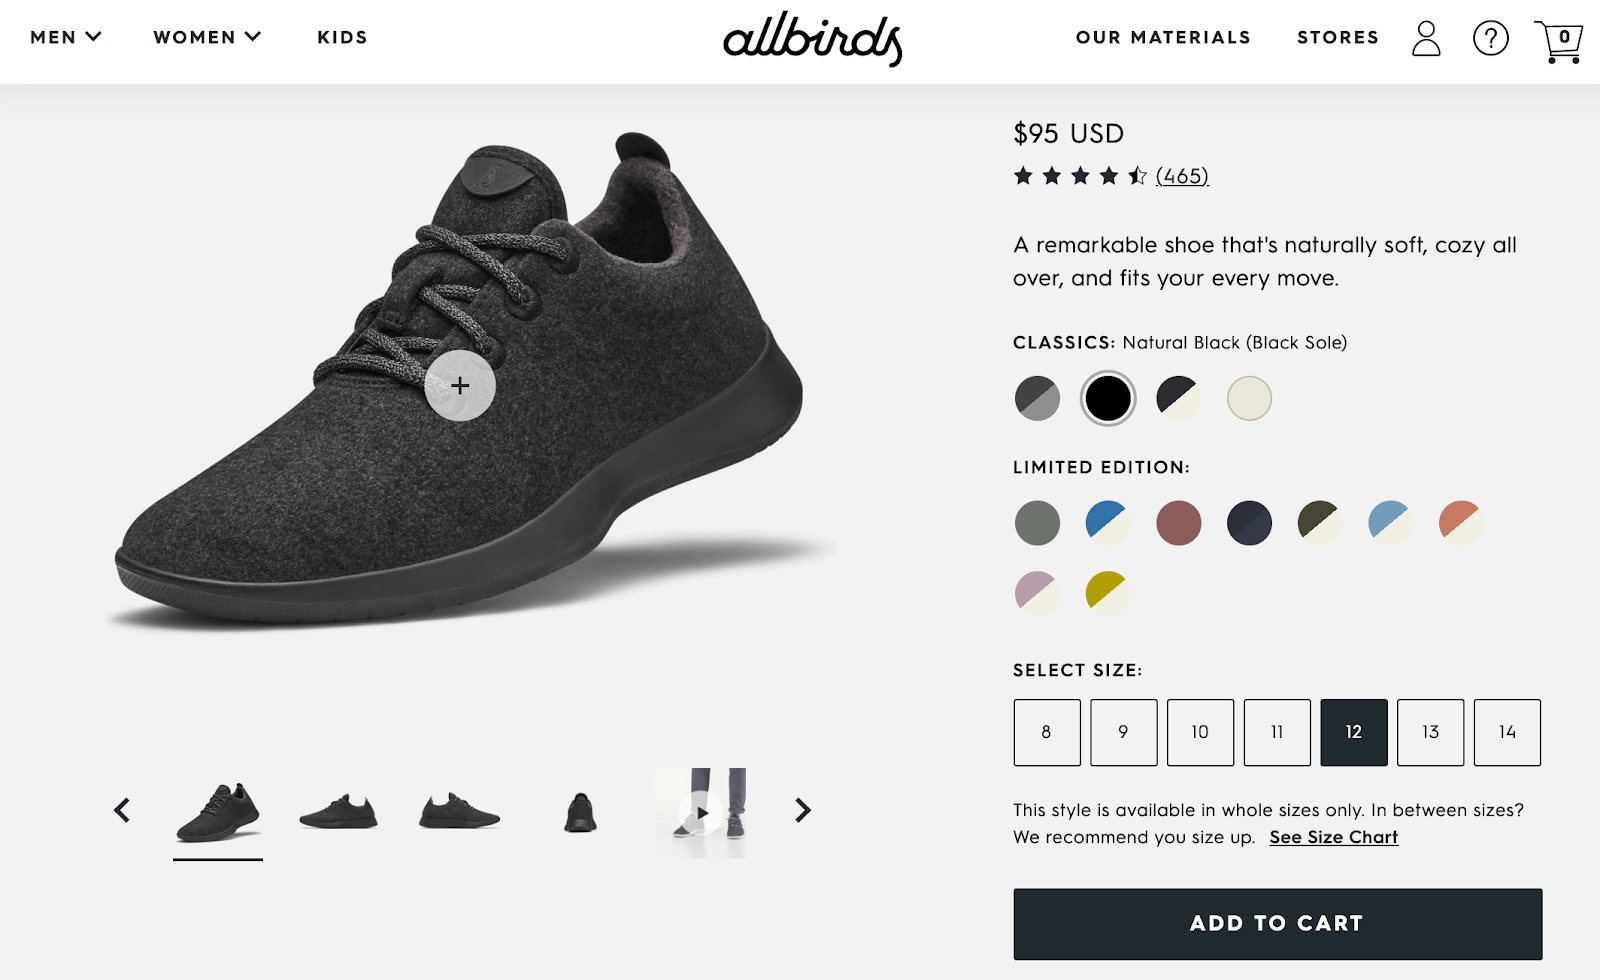 Screenshot of Allbirds product page focused on adding something to a basket